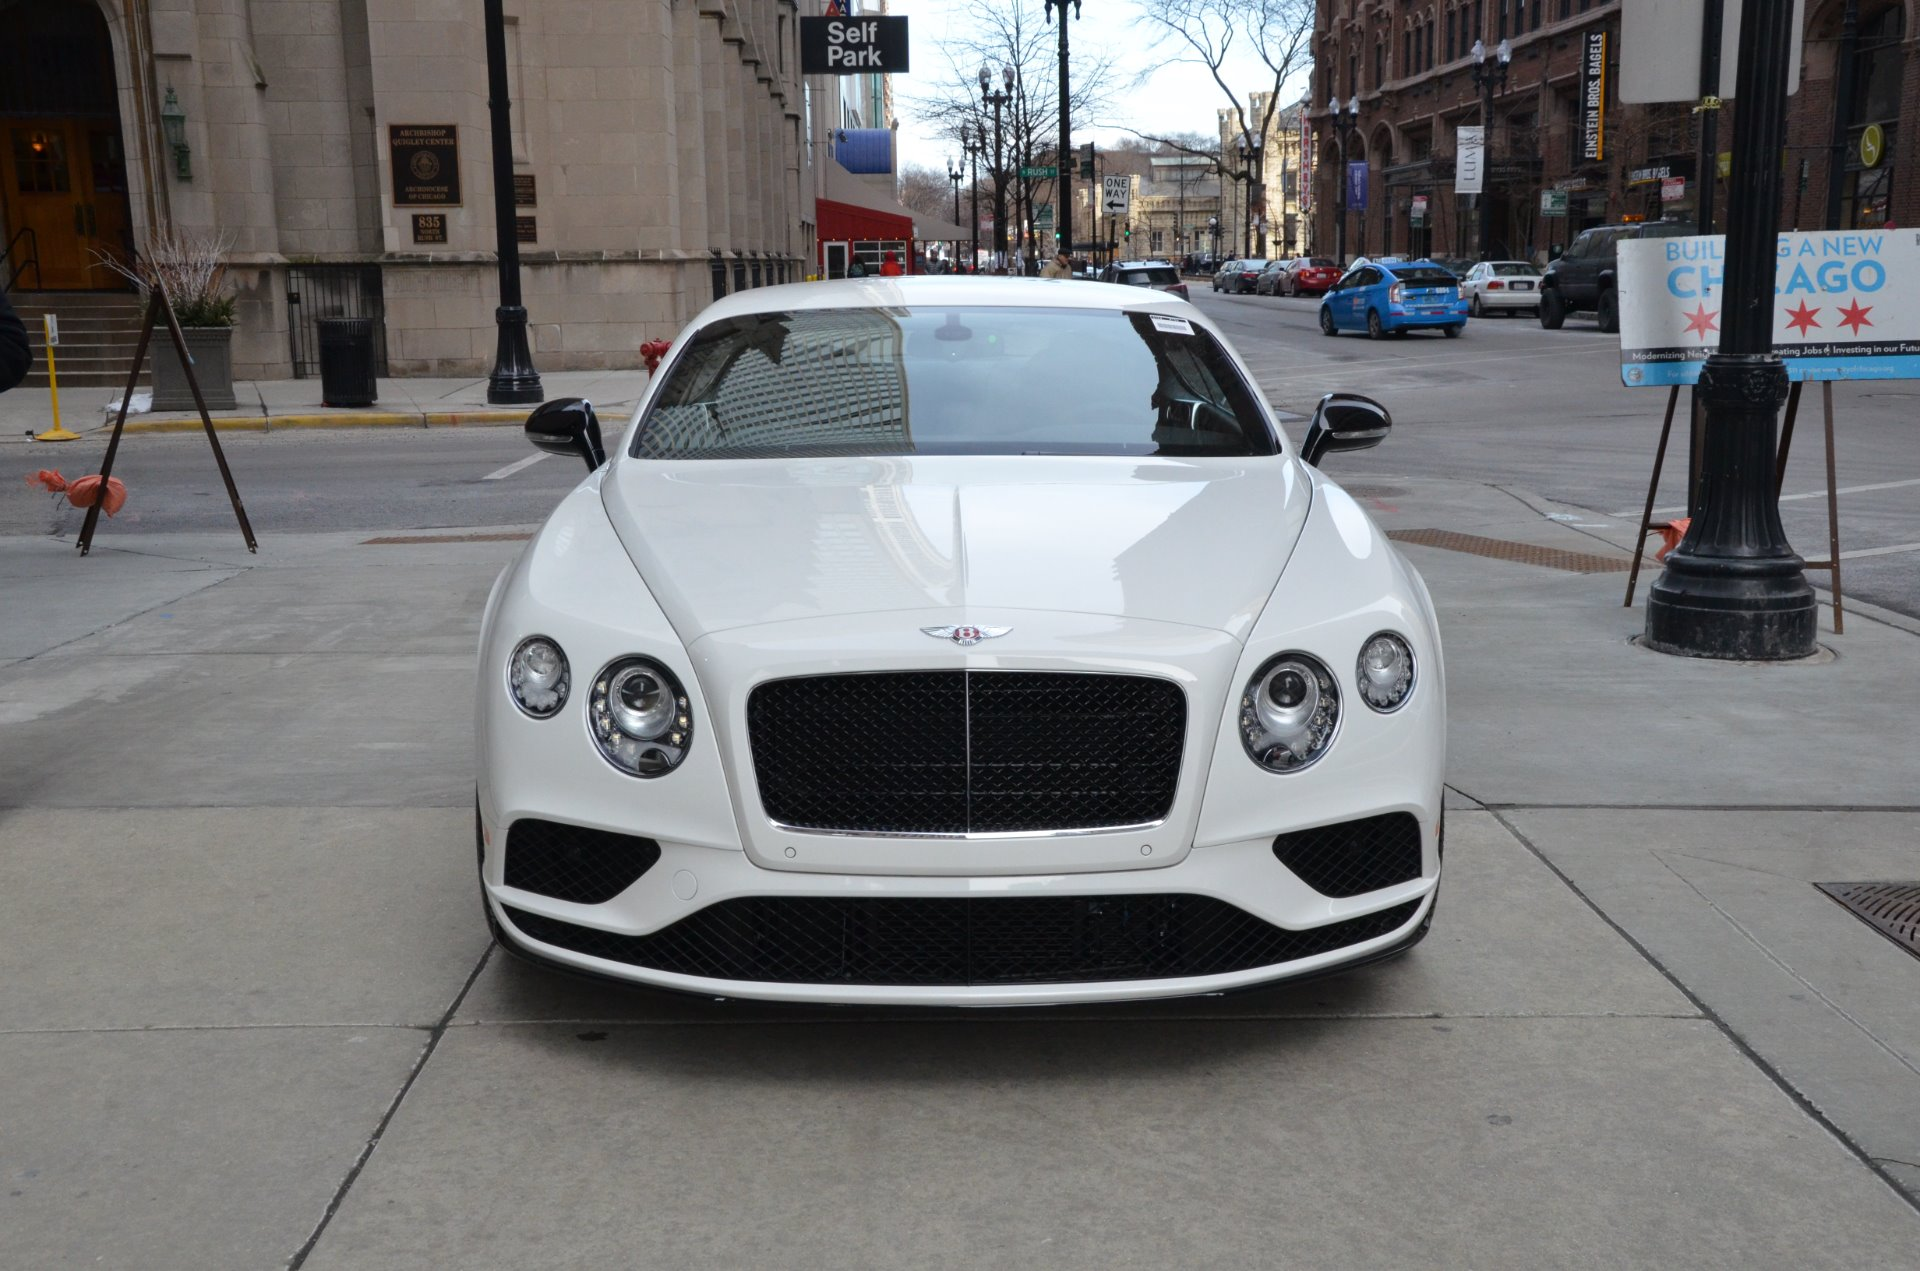 2016 bentley continental gt v8 s stock b764 s for sale near chicago il il bentley dealer. Black Bedroom Furniture Sets. Home Design Ideas